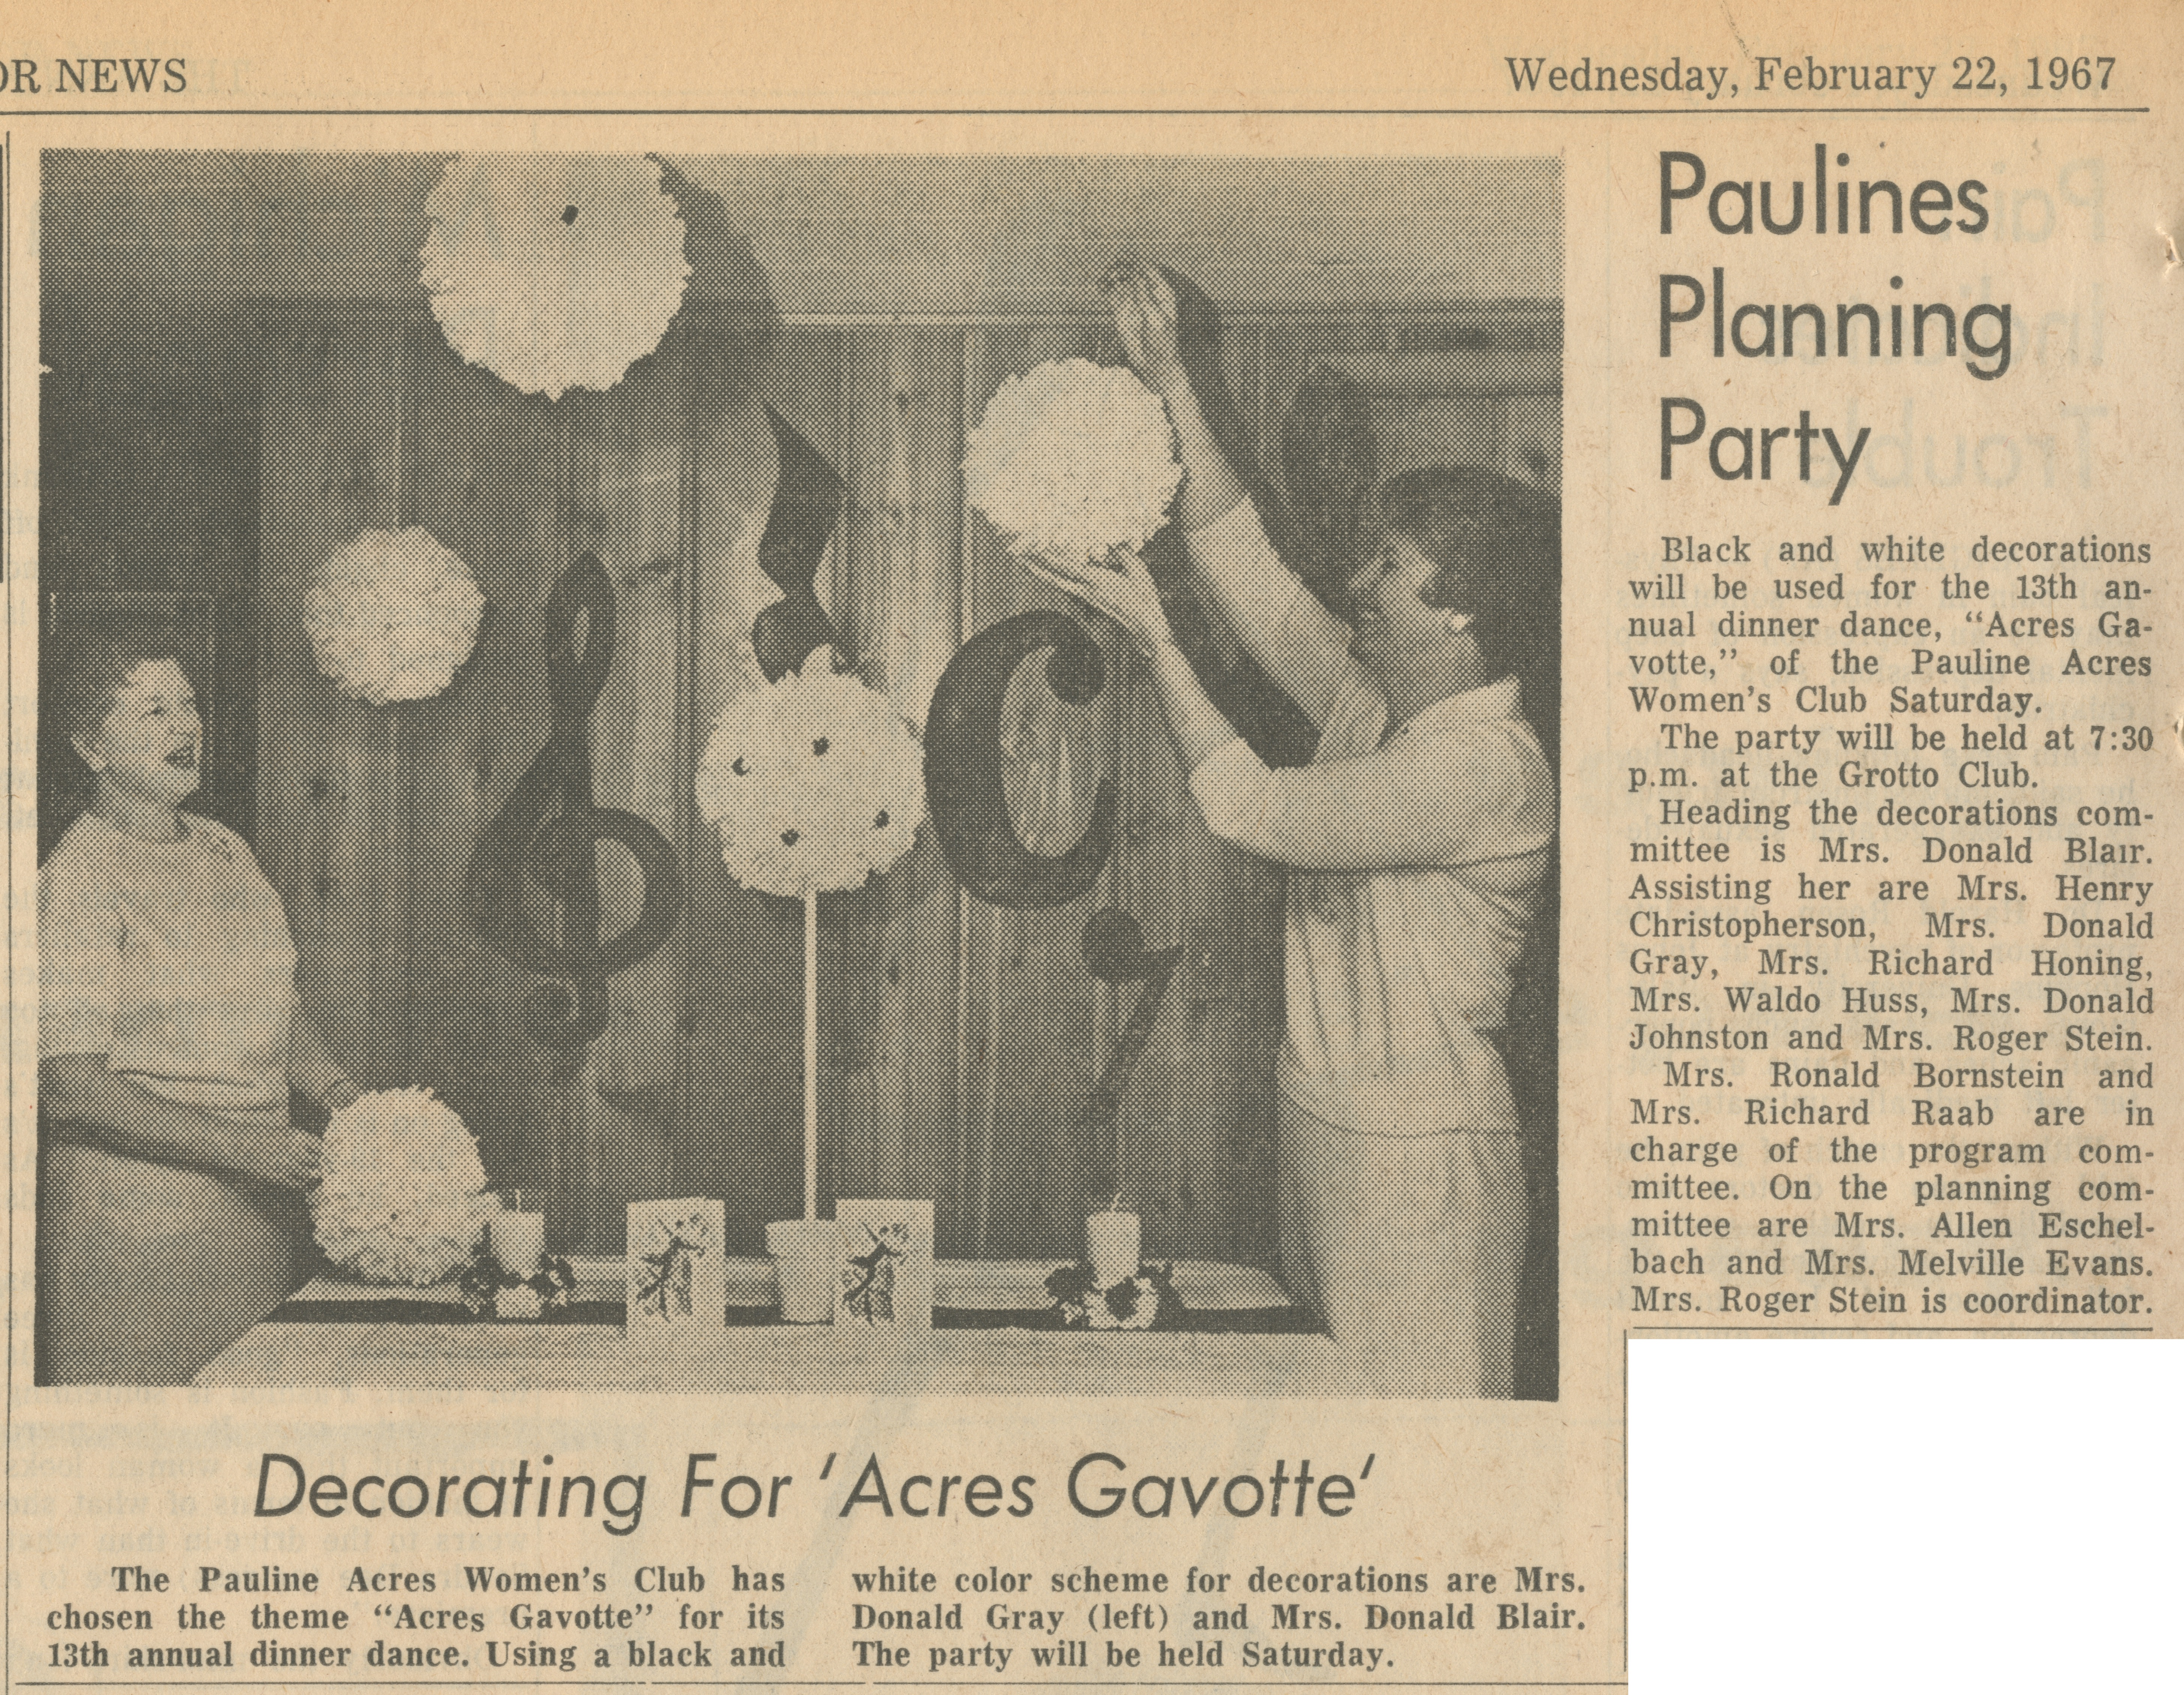 Paulines Planning Party image